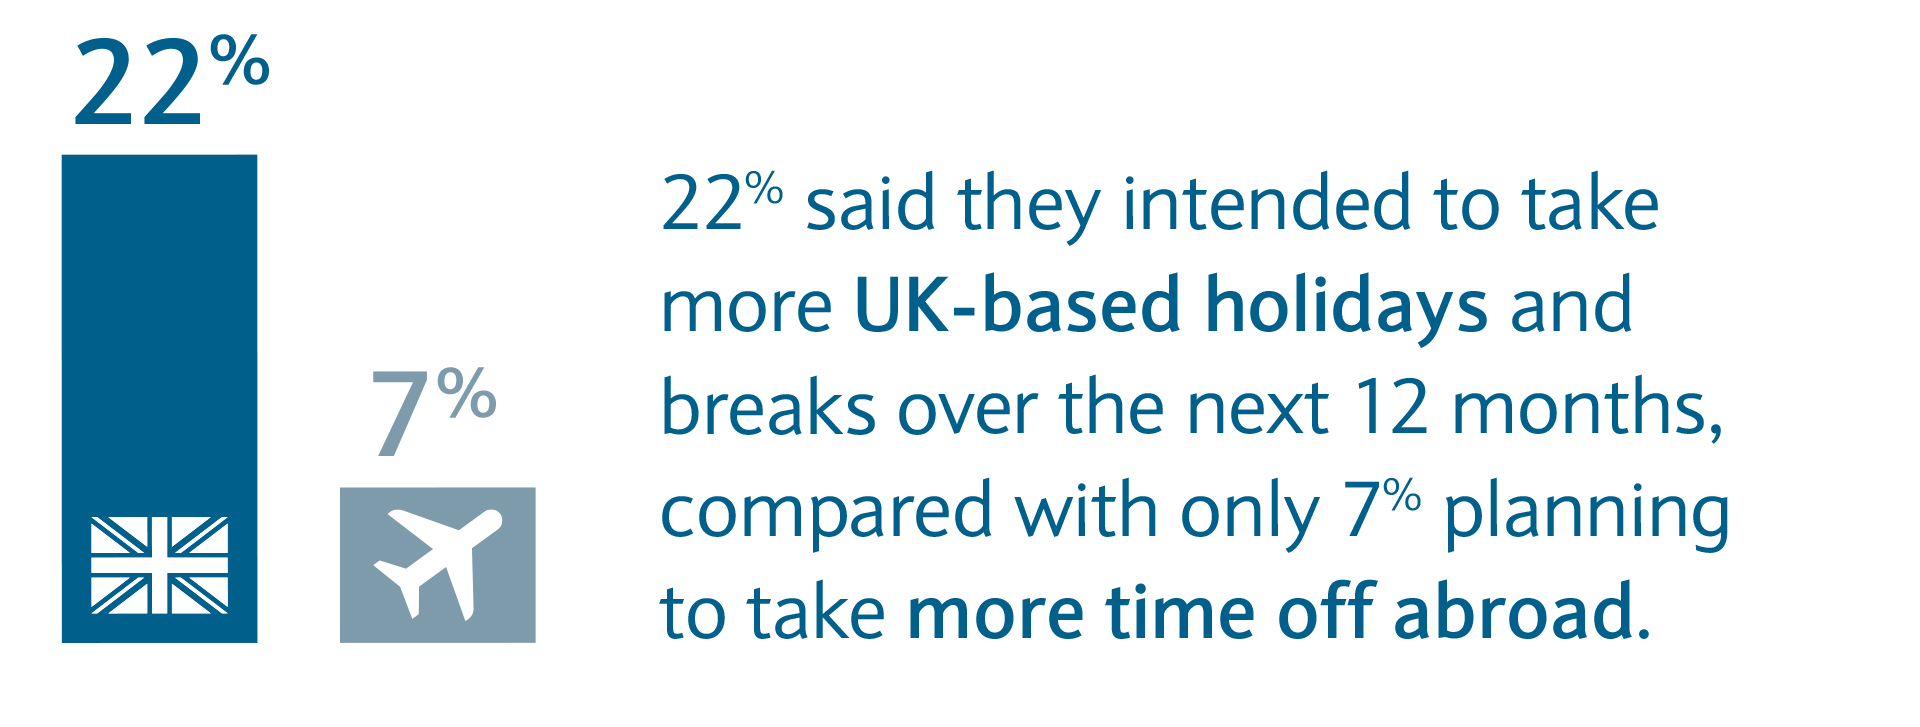 22% said they intended to matake more UK breaks over the next 12 months.